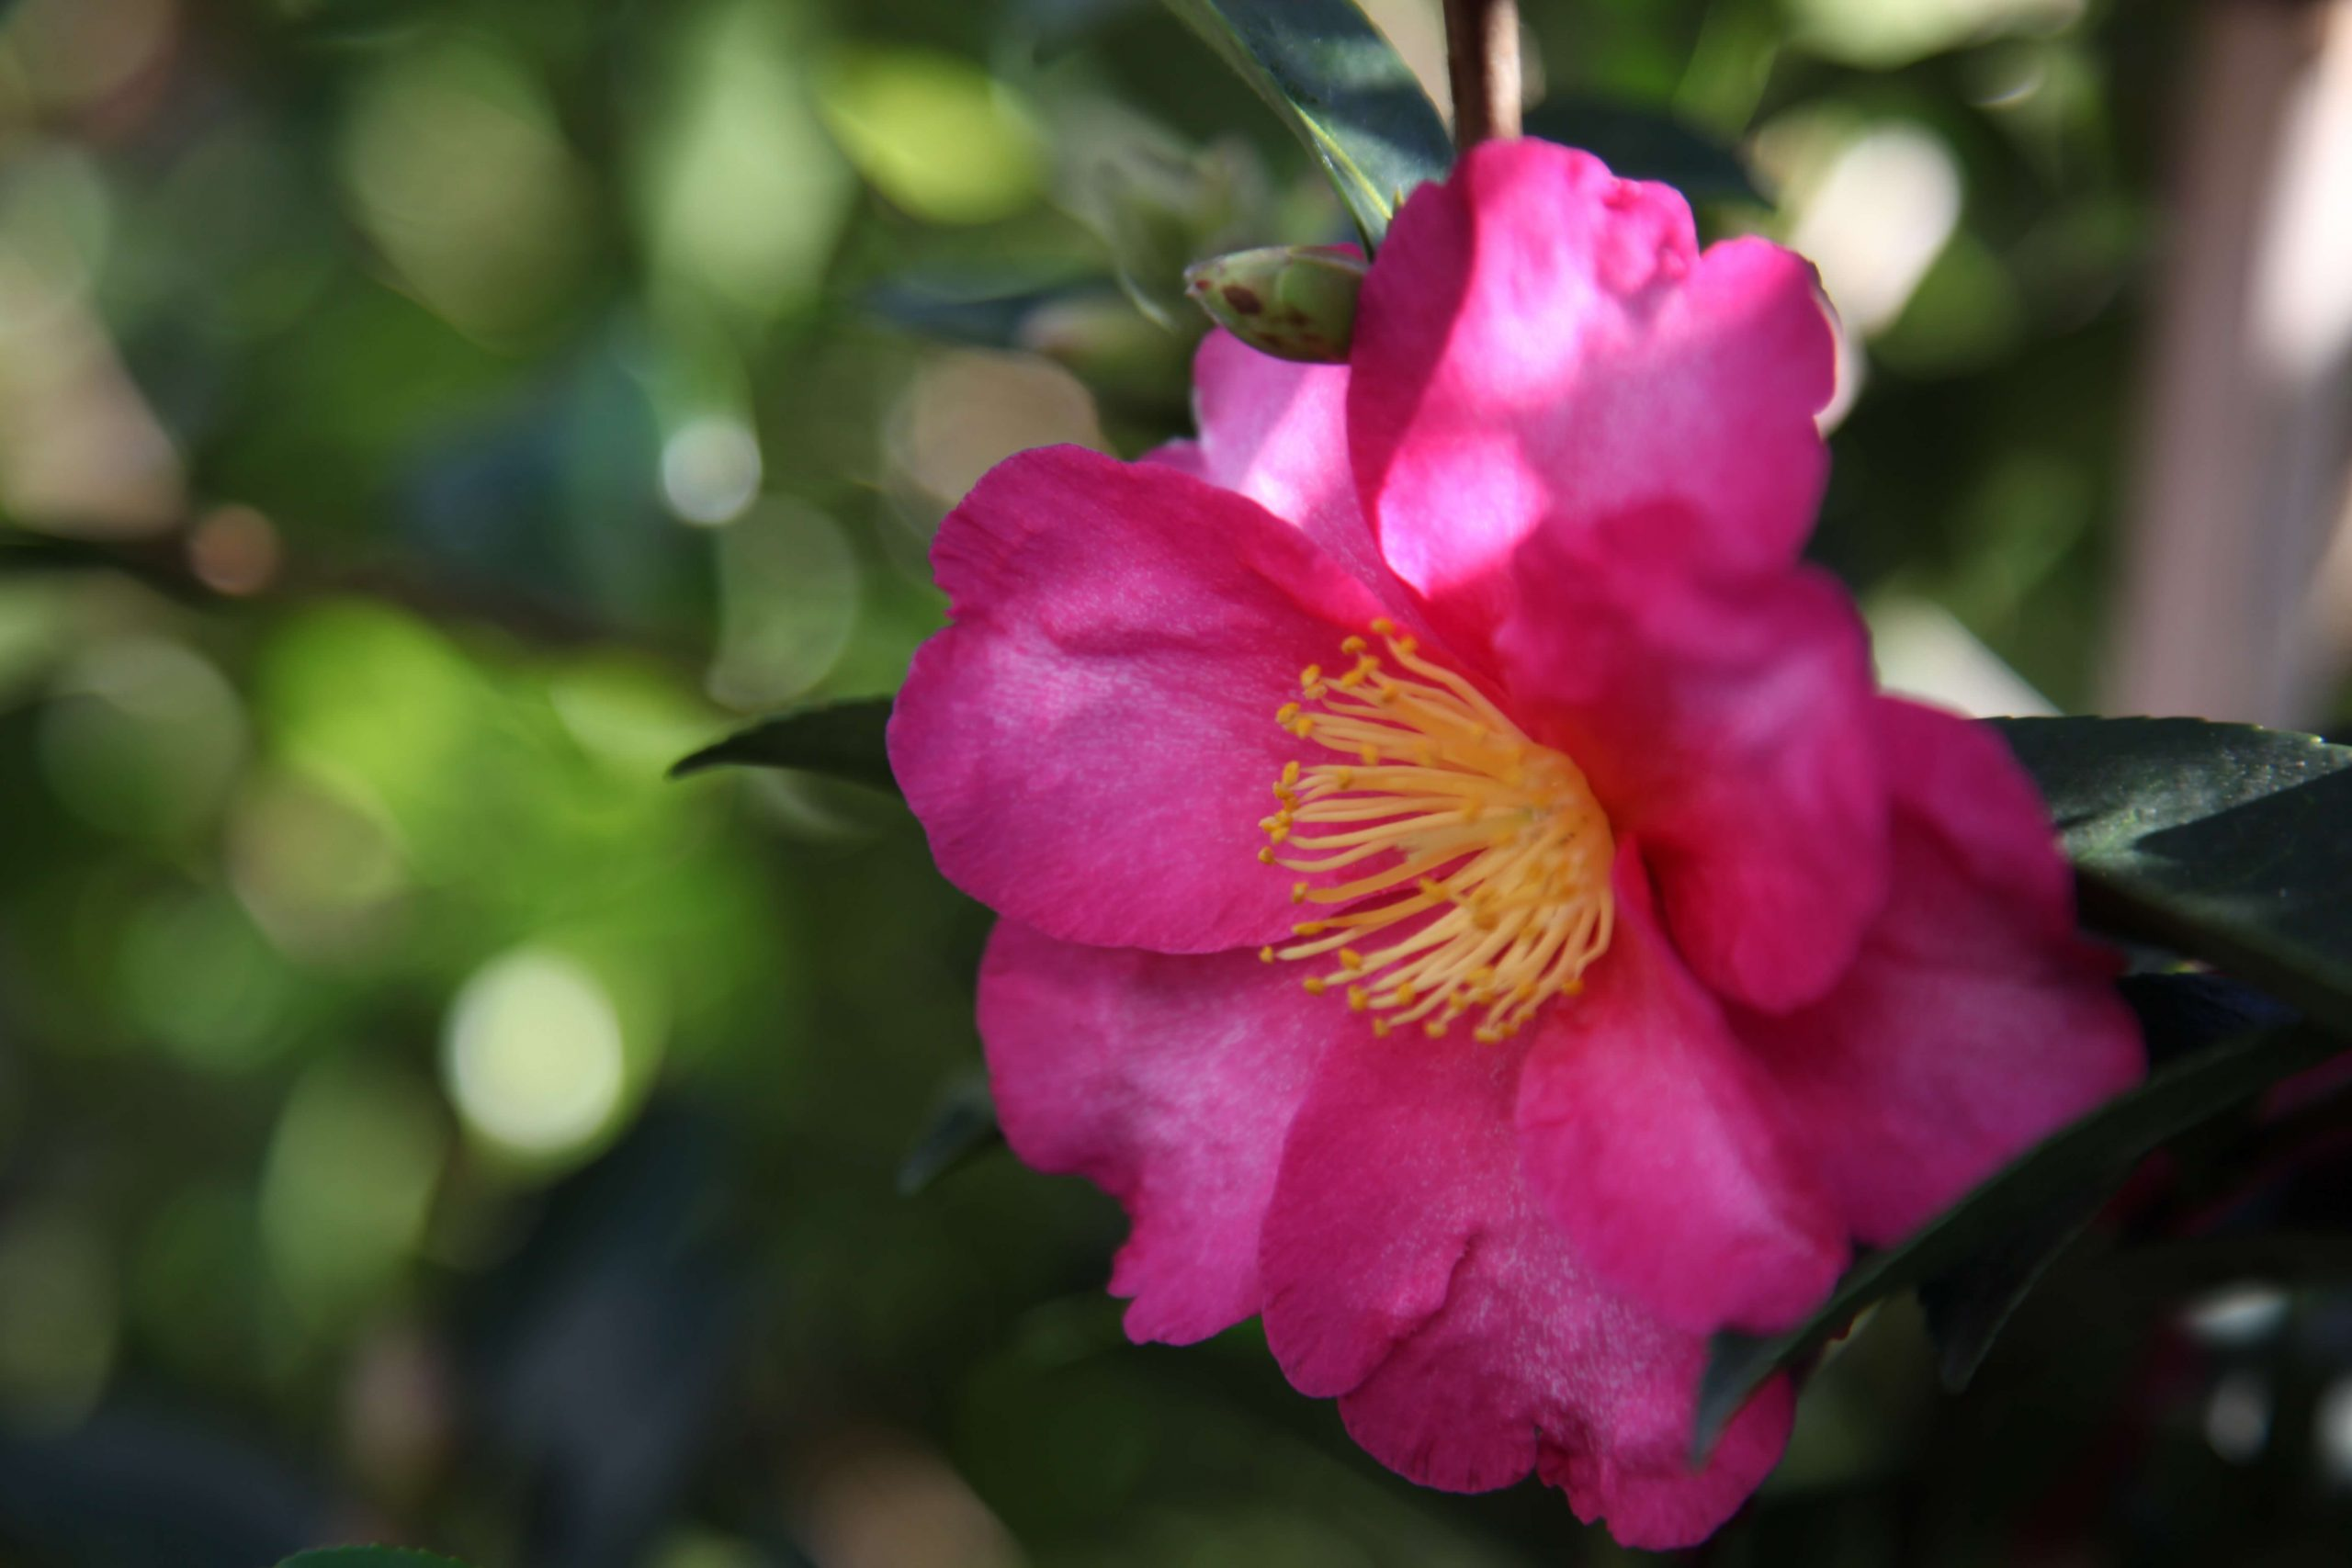 Camelia Hiryu Shrubs Melbourne - Kilby Park Tree Farm Wholesale Nursery Kew